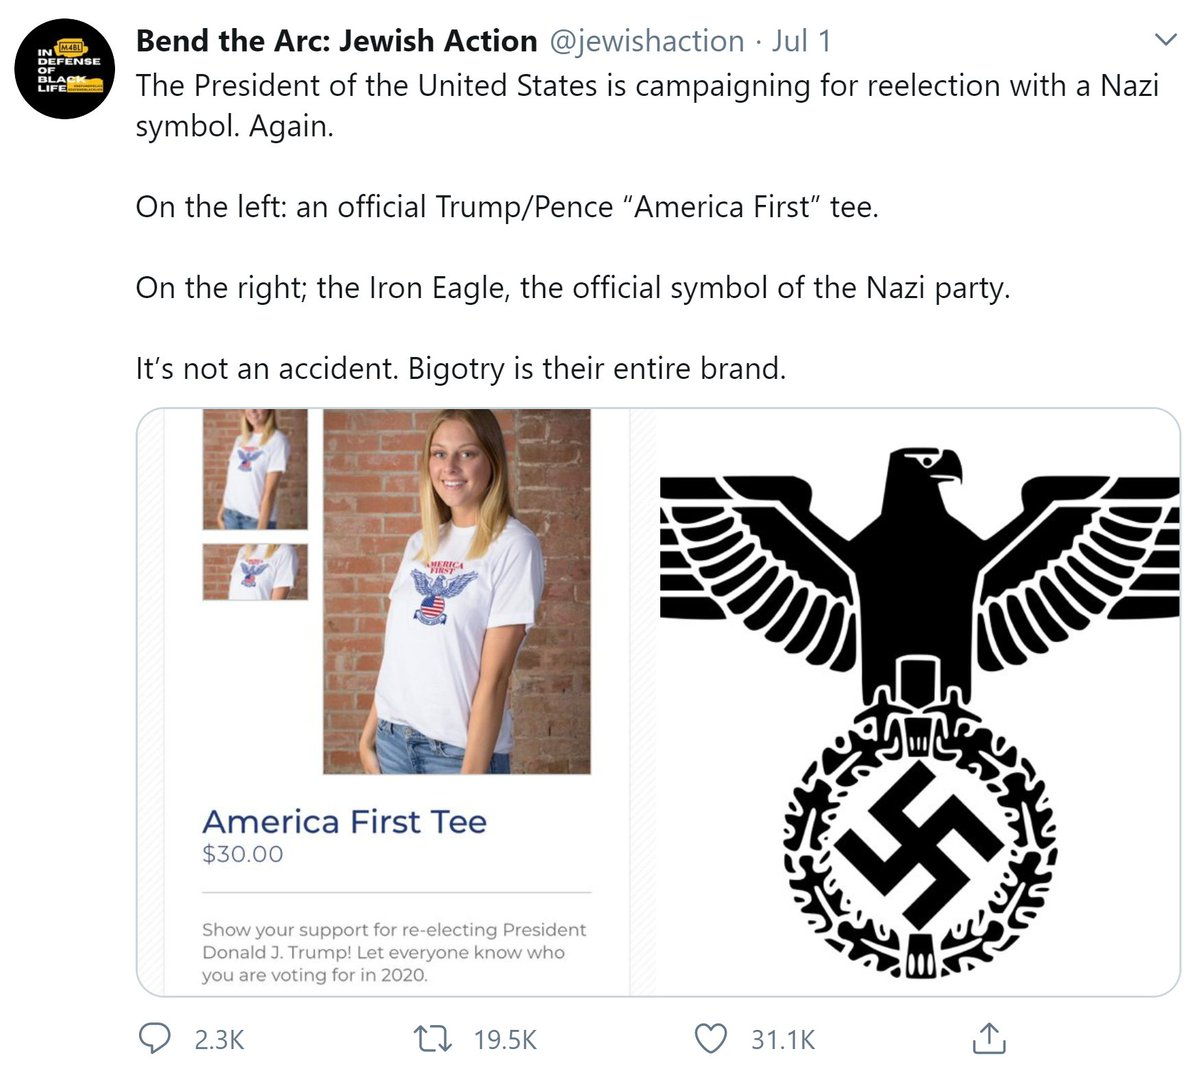 This is just a stock clip art image of an American eagle + flag by an artist who also does Jewish-themed art:  There are so many terrible things to worry about from this administration, we do not need to invent new ones. Save your energy for the real stuff!